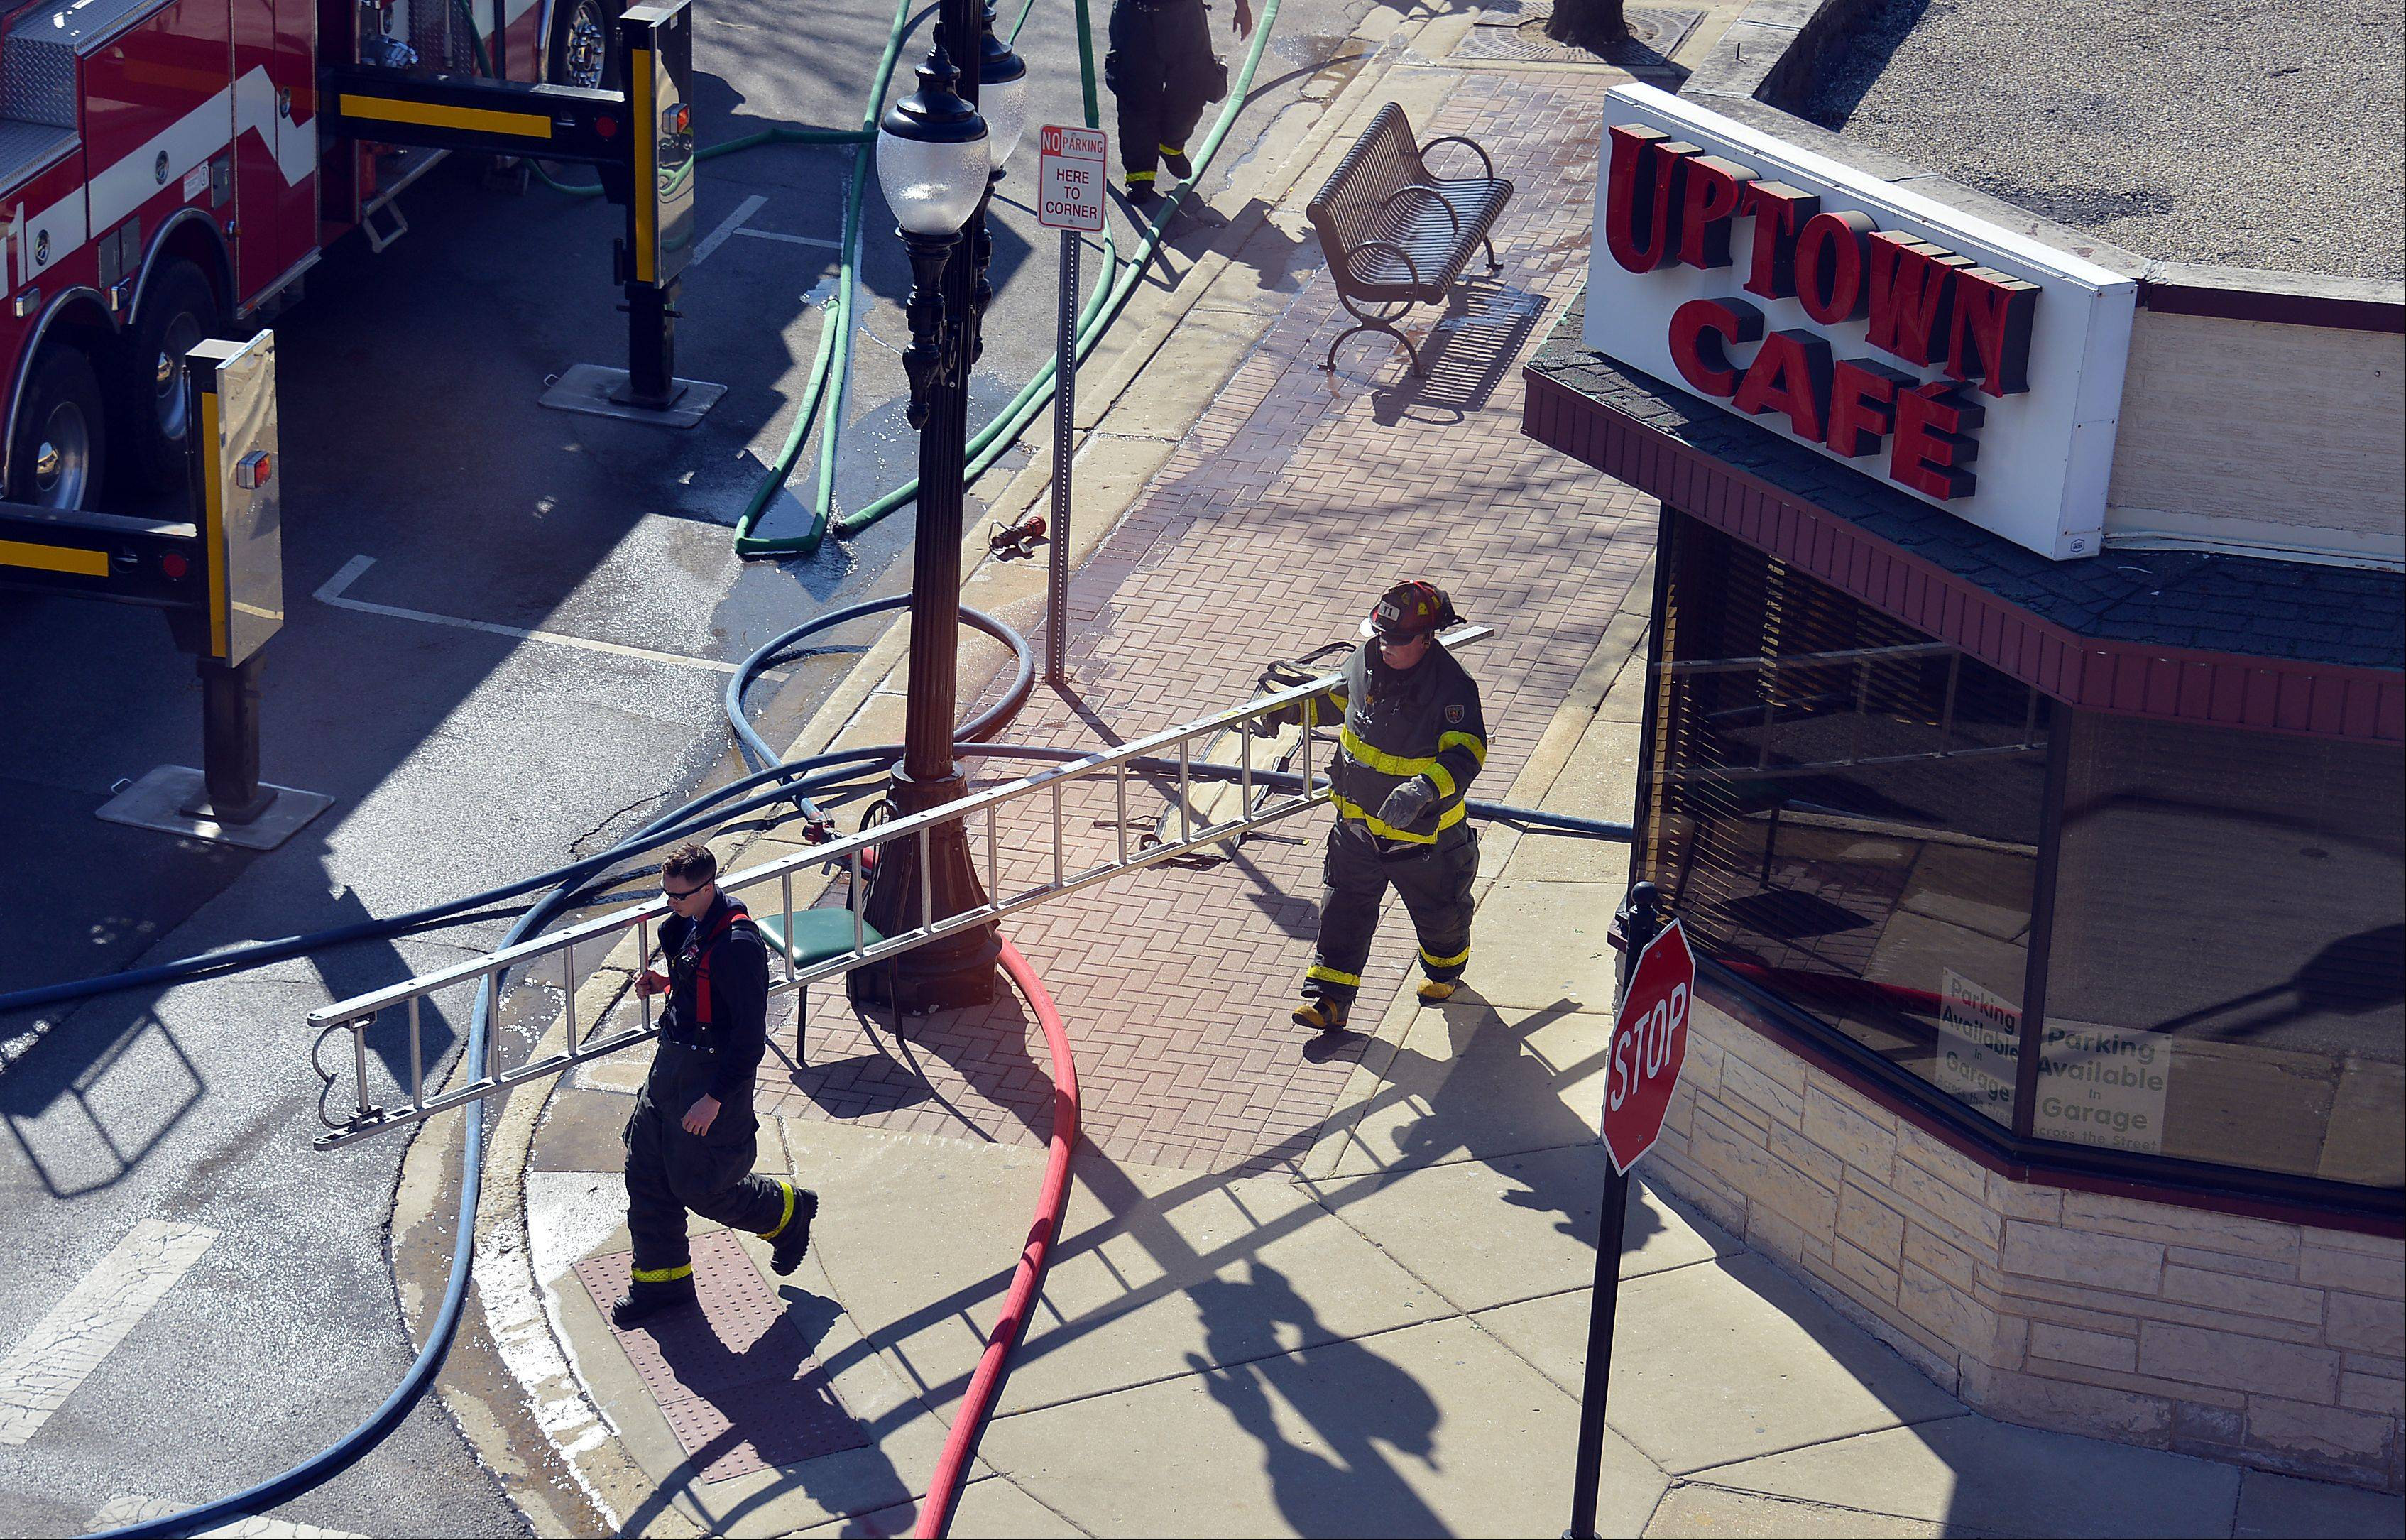 Arlington Heights firefighters carry ladders to access the roof at the Uptown Cafe restaurant after a fire started there in the early afternoon on Wednesday.